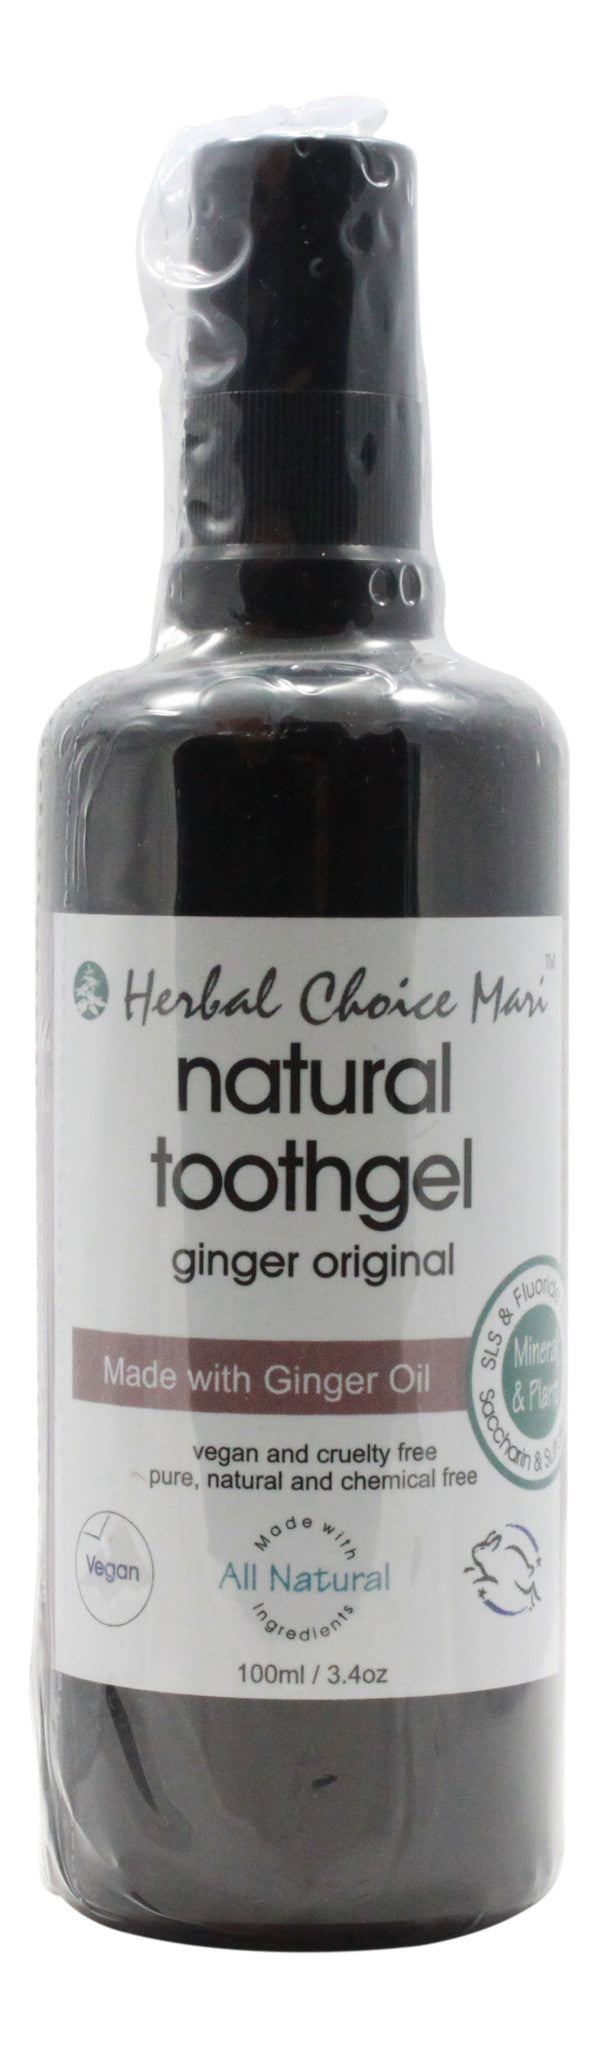 Natural Toothgel - Ginger Original - 3.4 oz Bottle - Front